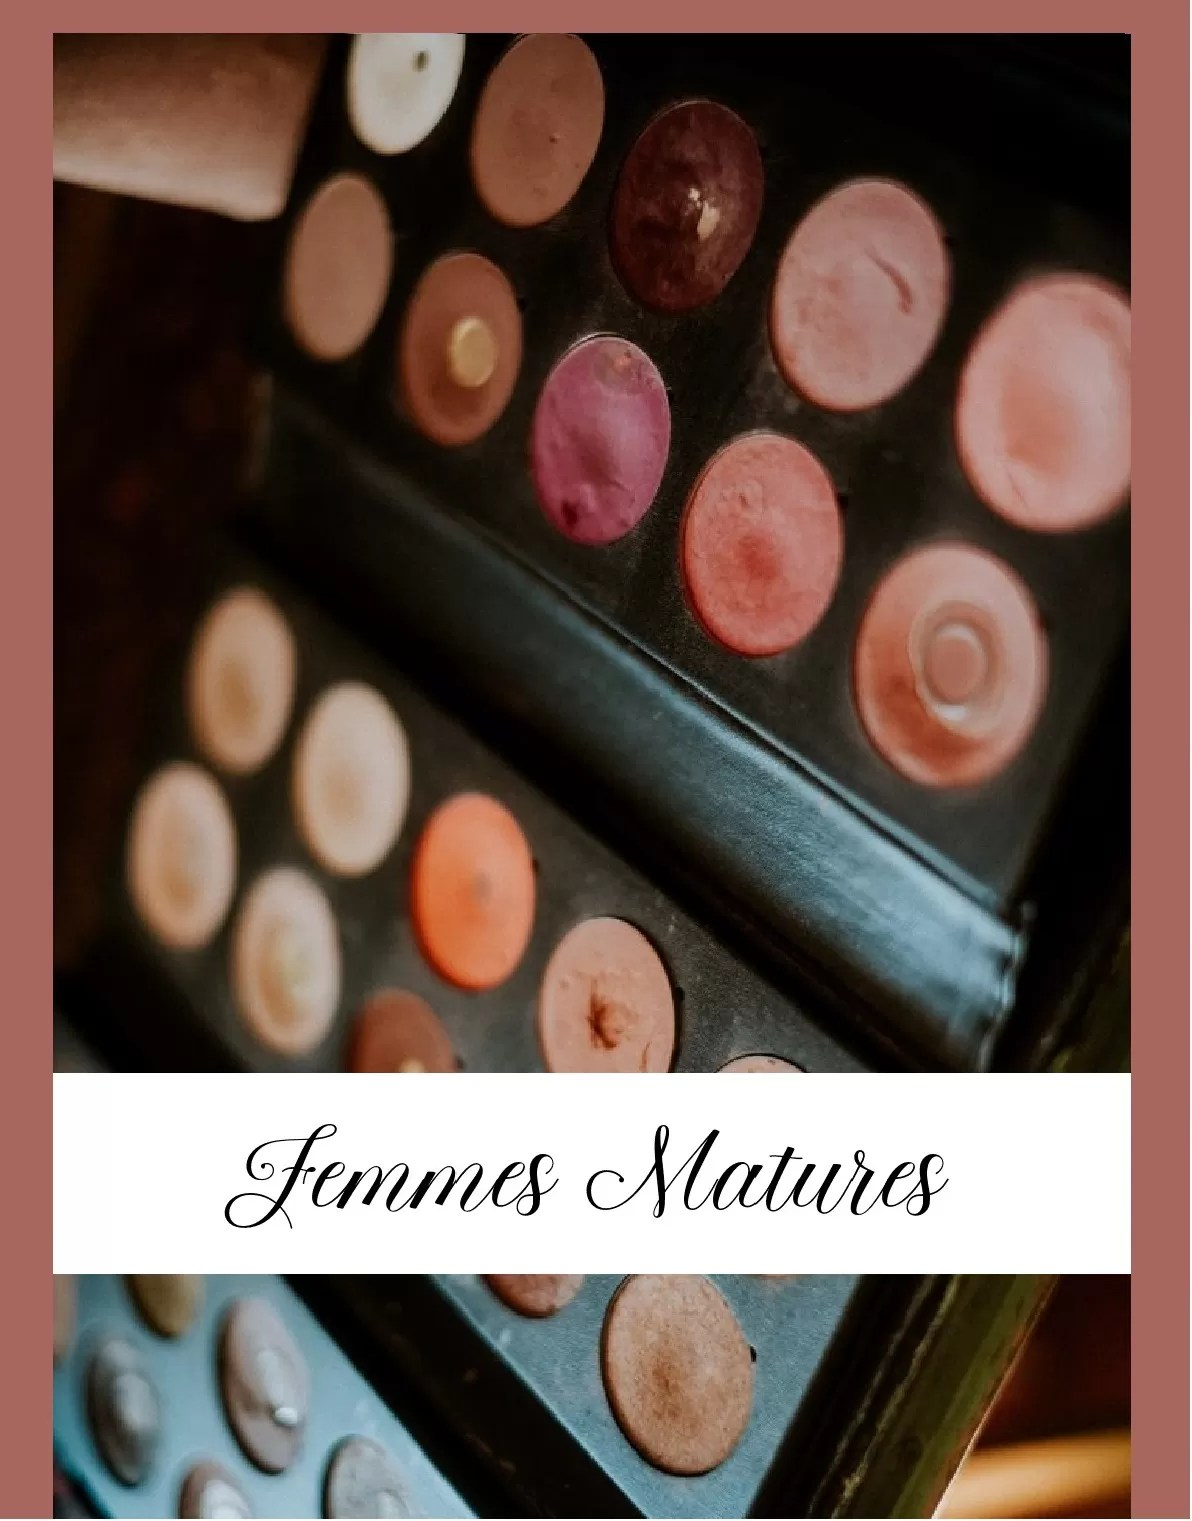 formation maquillage femmes matures